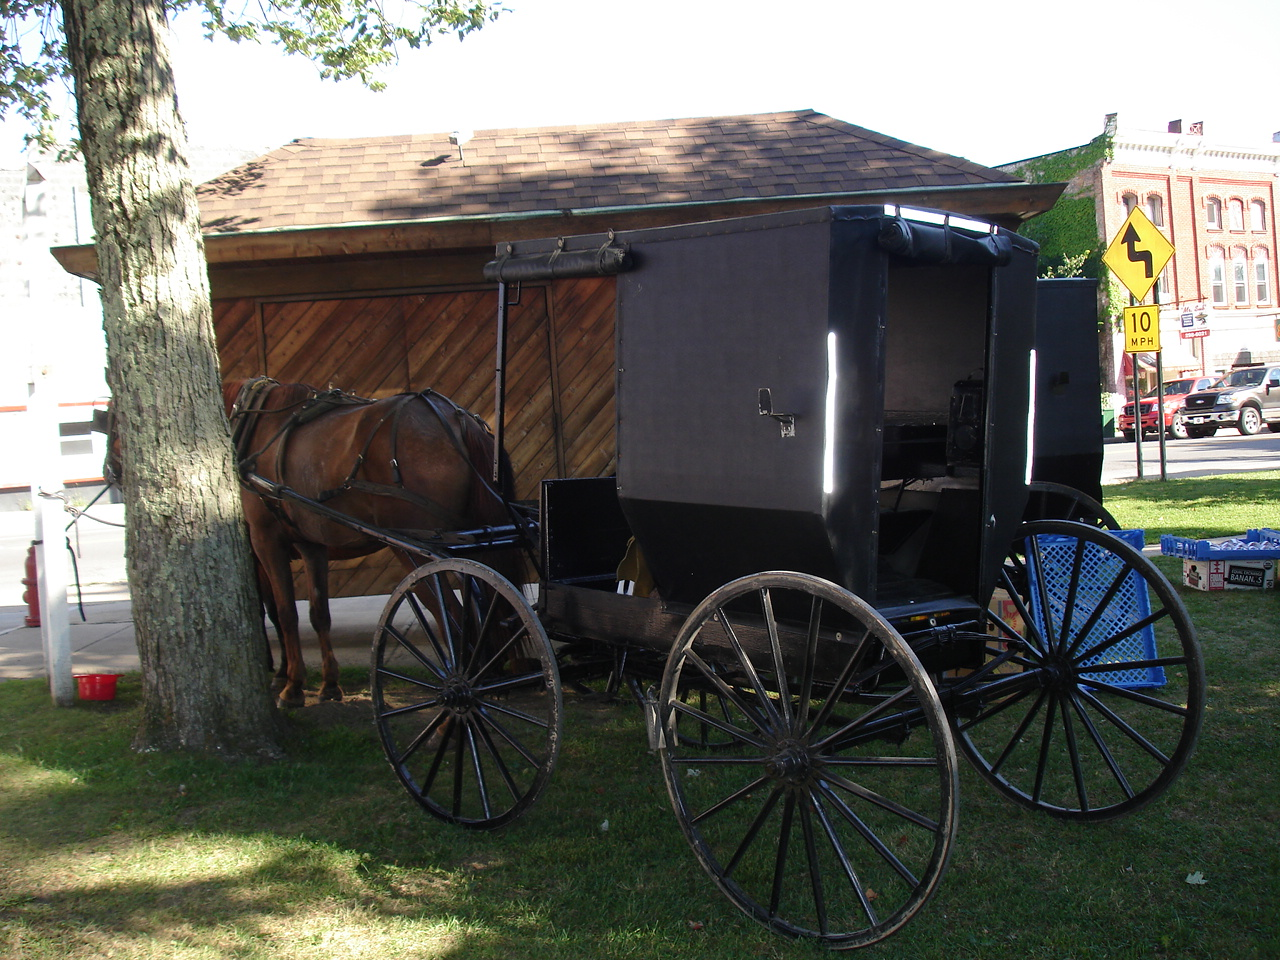 Priscilla Kibbee: The Amish are Coming! The Amish are Coming!